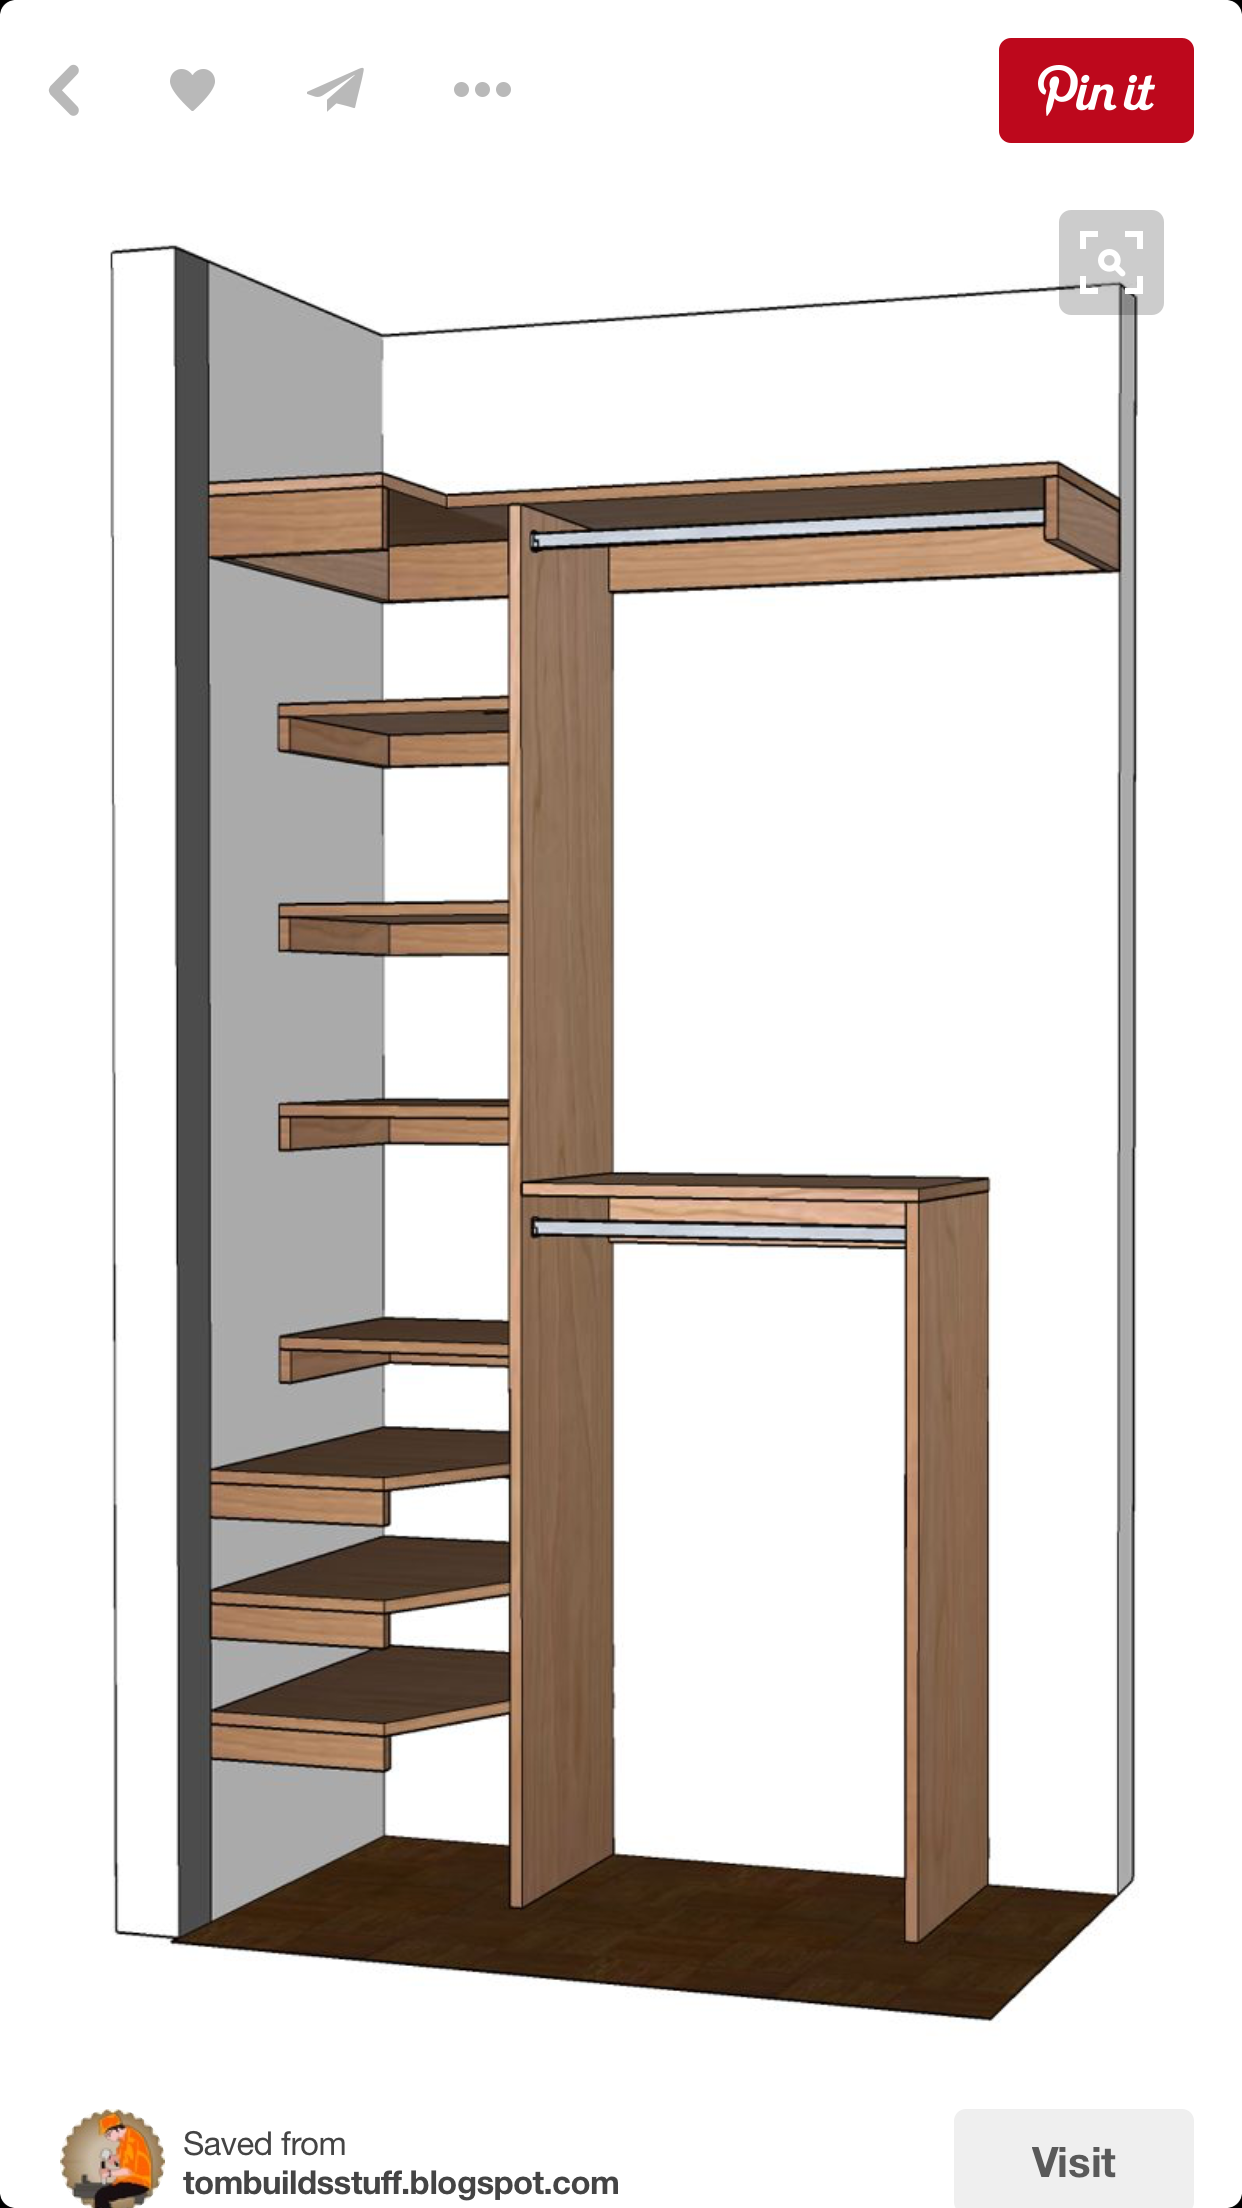 traditional organizers ideas white closets size bedroom kids custom whitmire baby furniture companies designs modern small capitol luxury pantry in high organizer cabinets reach solutions full wood amazing beautiful closet of walk dma design dark homes end master